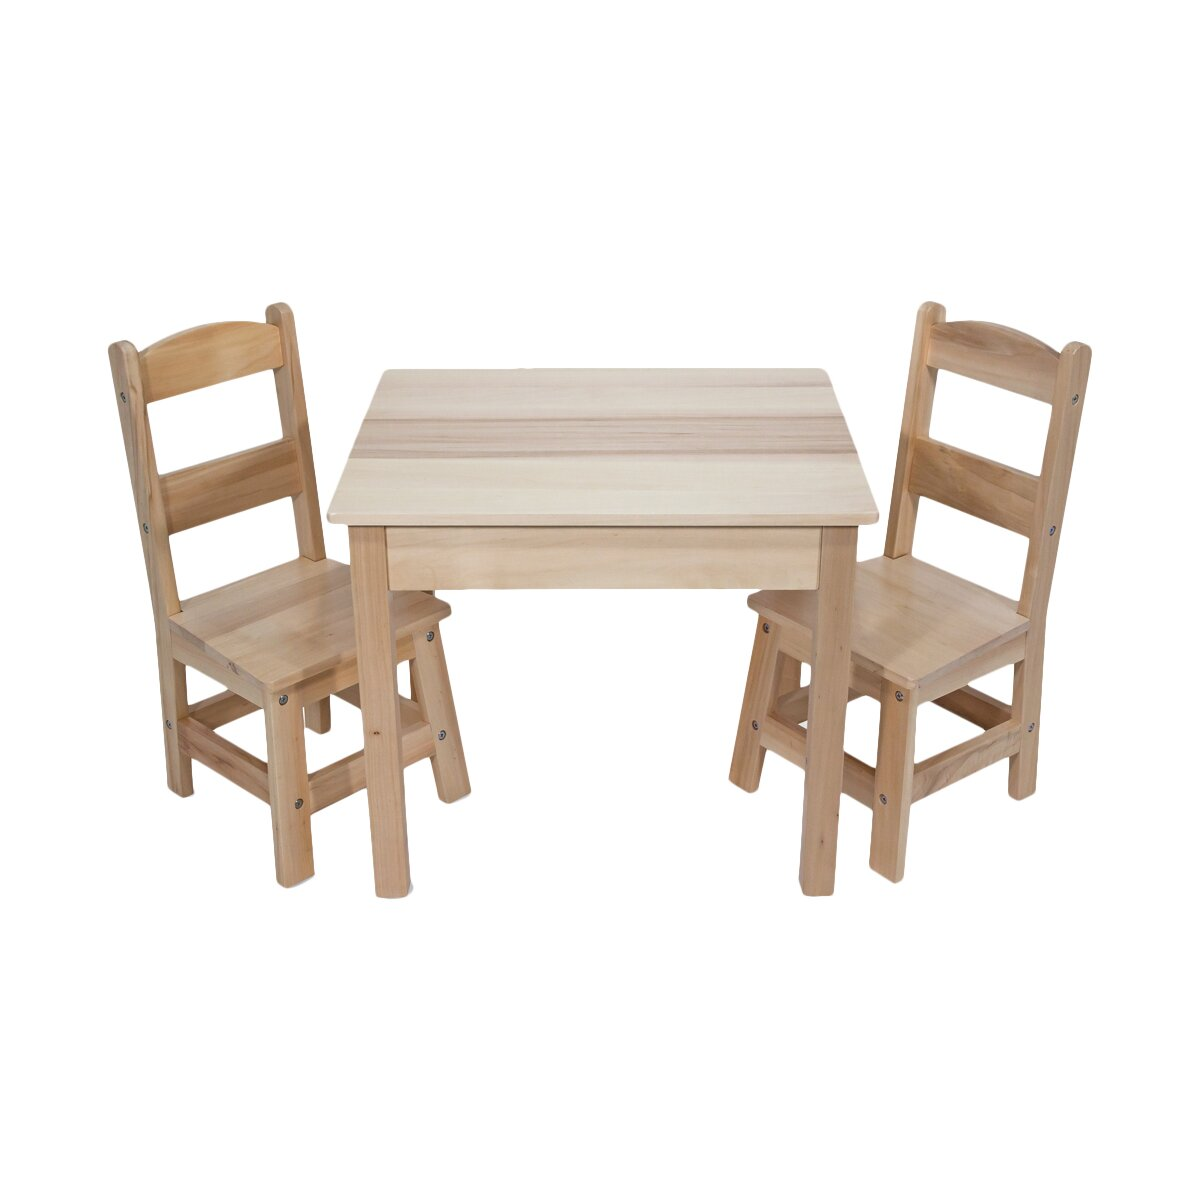 melissa doug 3 piece wooden table and chairs set reviews wayfair. Black Bedroom Furniture Sets. Home Design Ideas